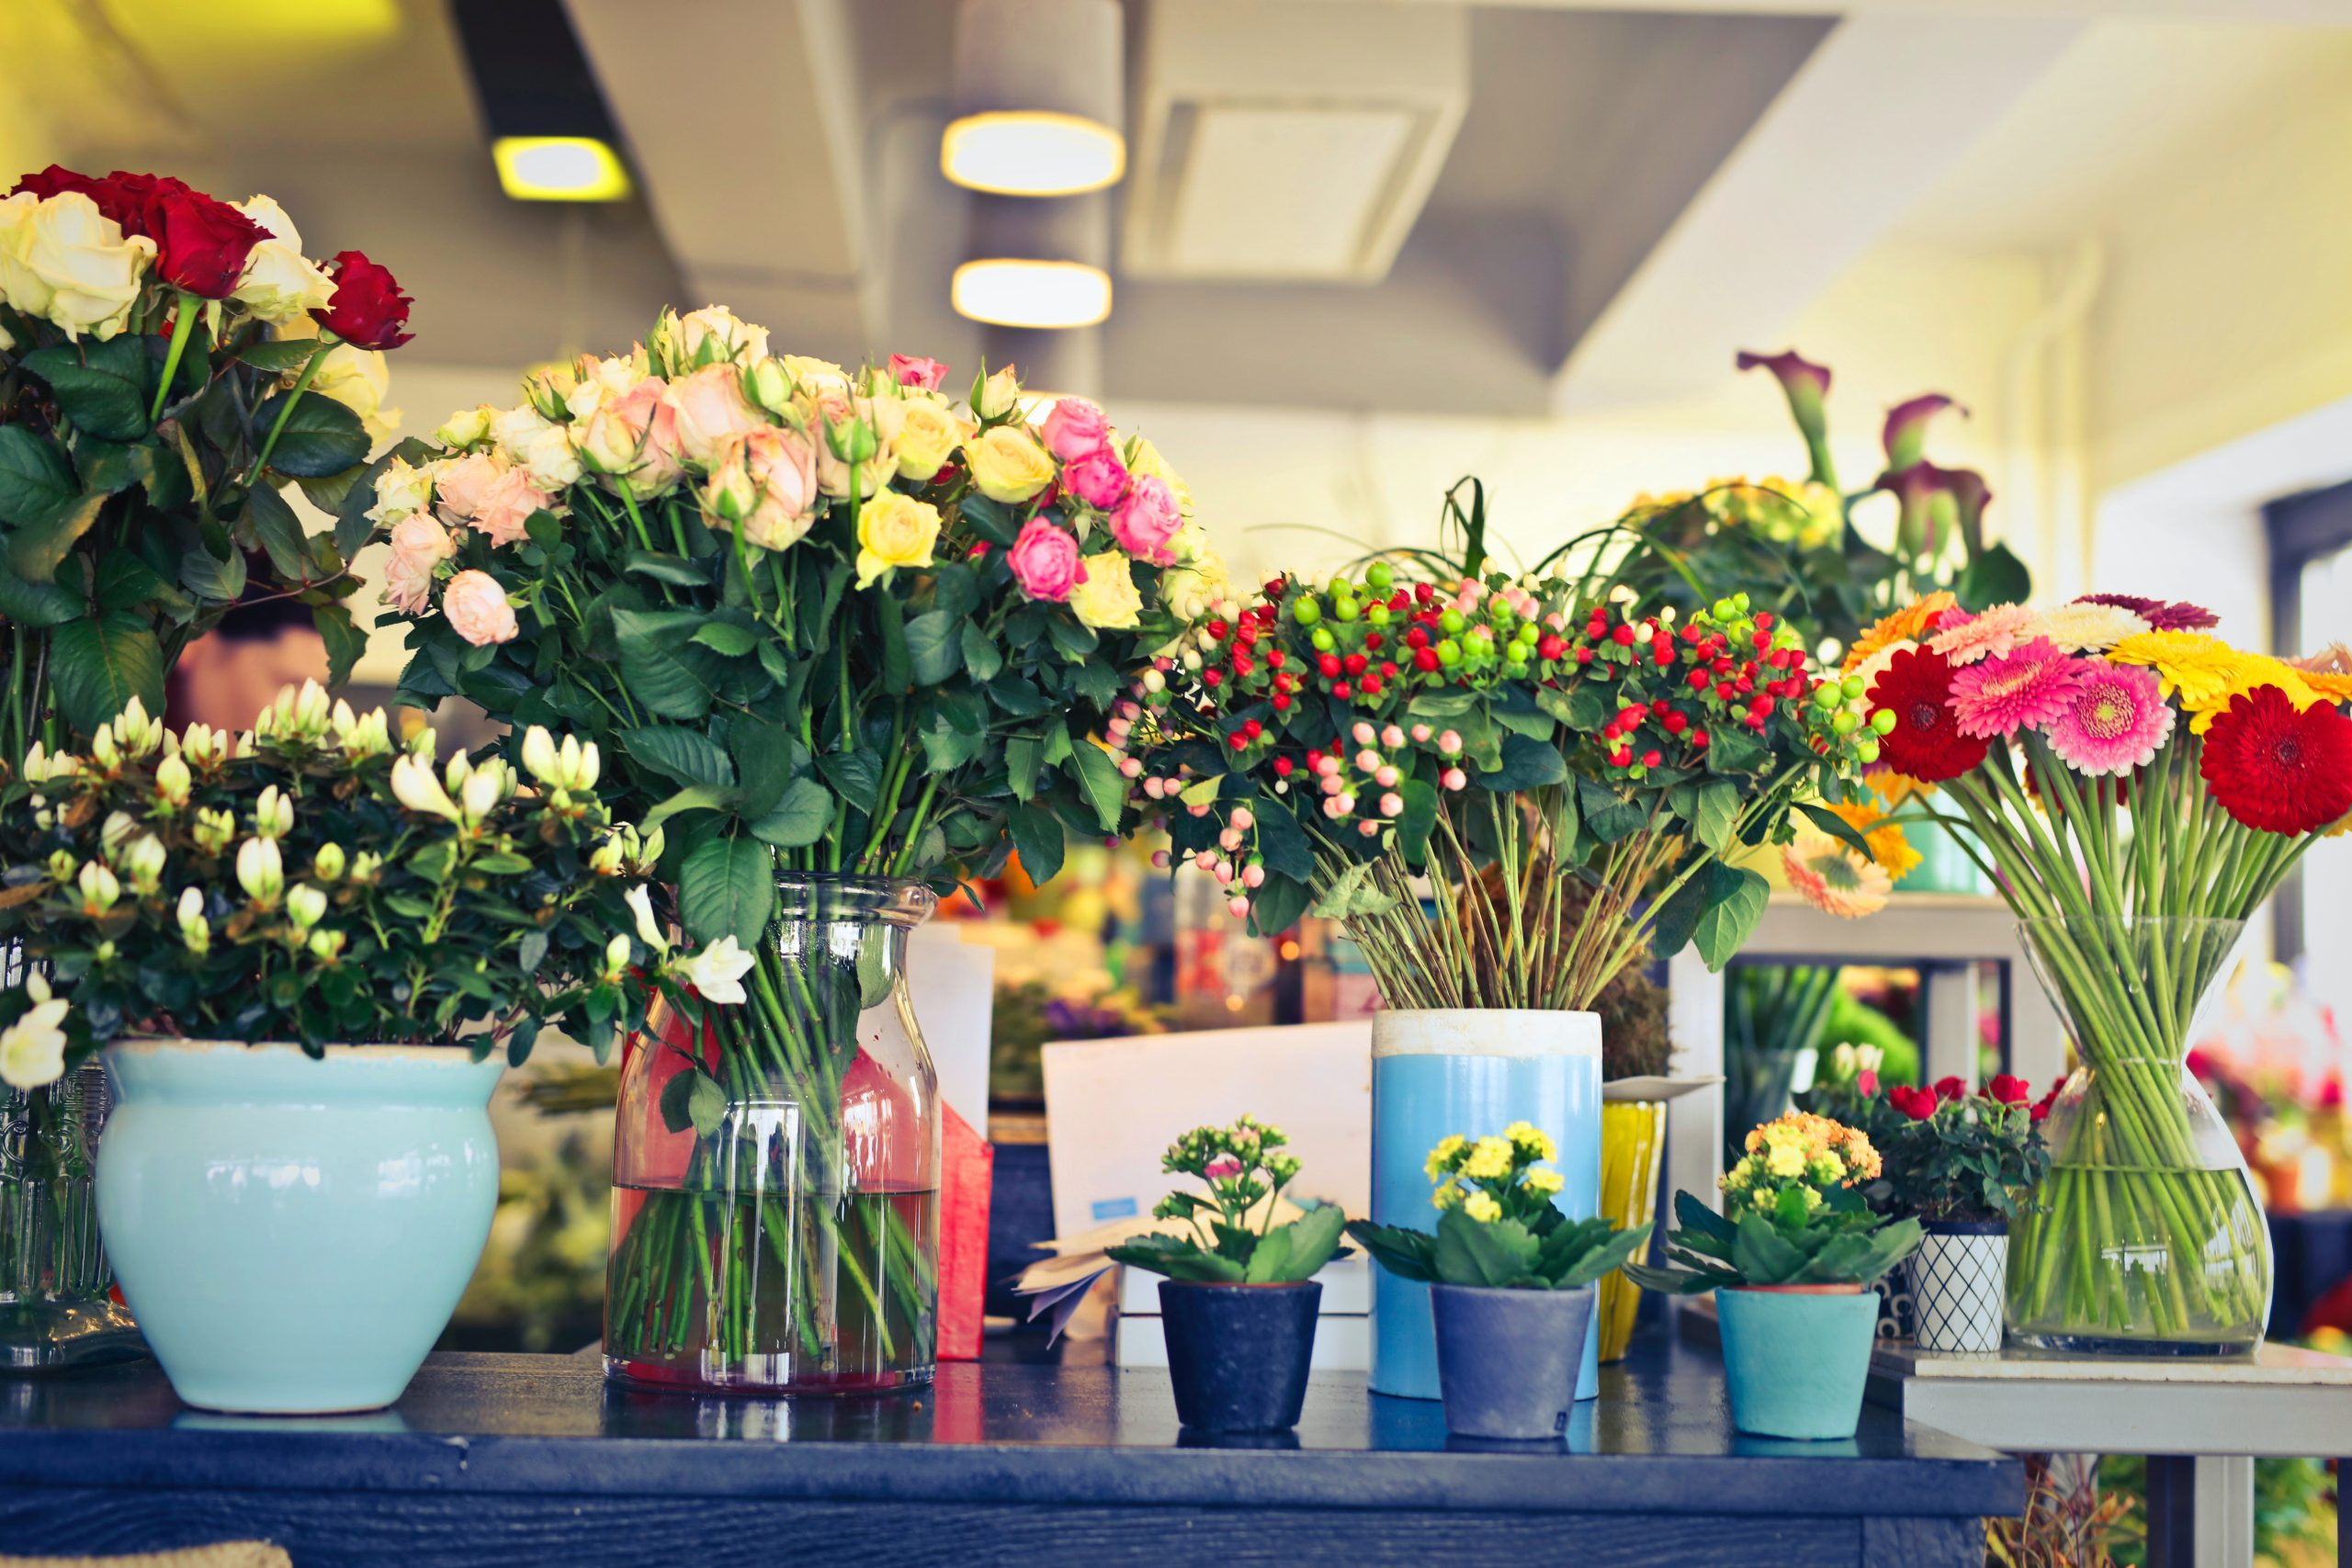 Valentine's Day: Flower shops import tons of flowers from South America.